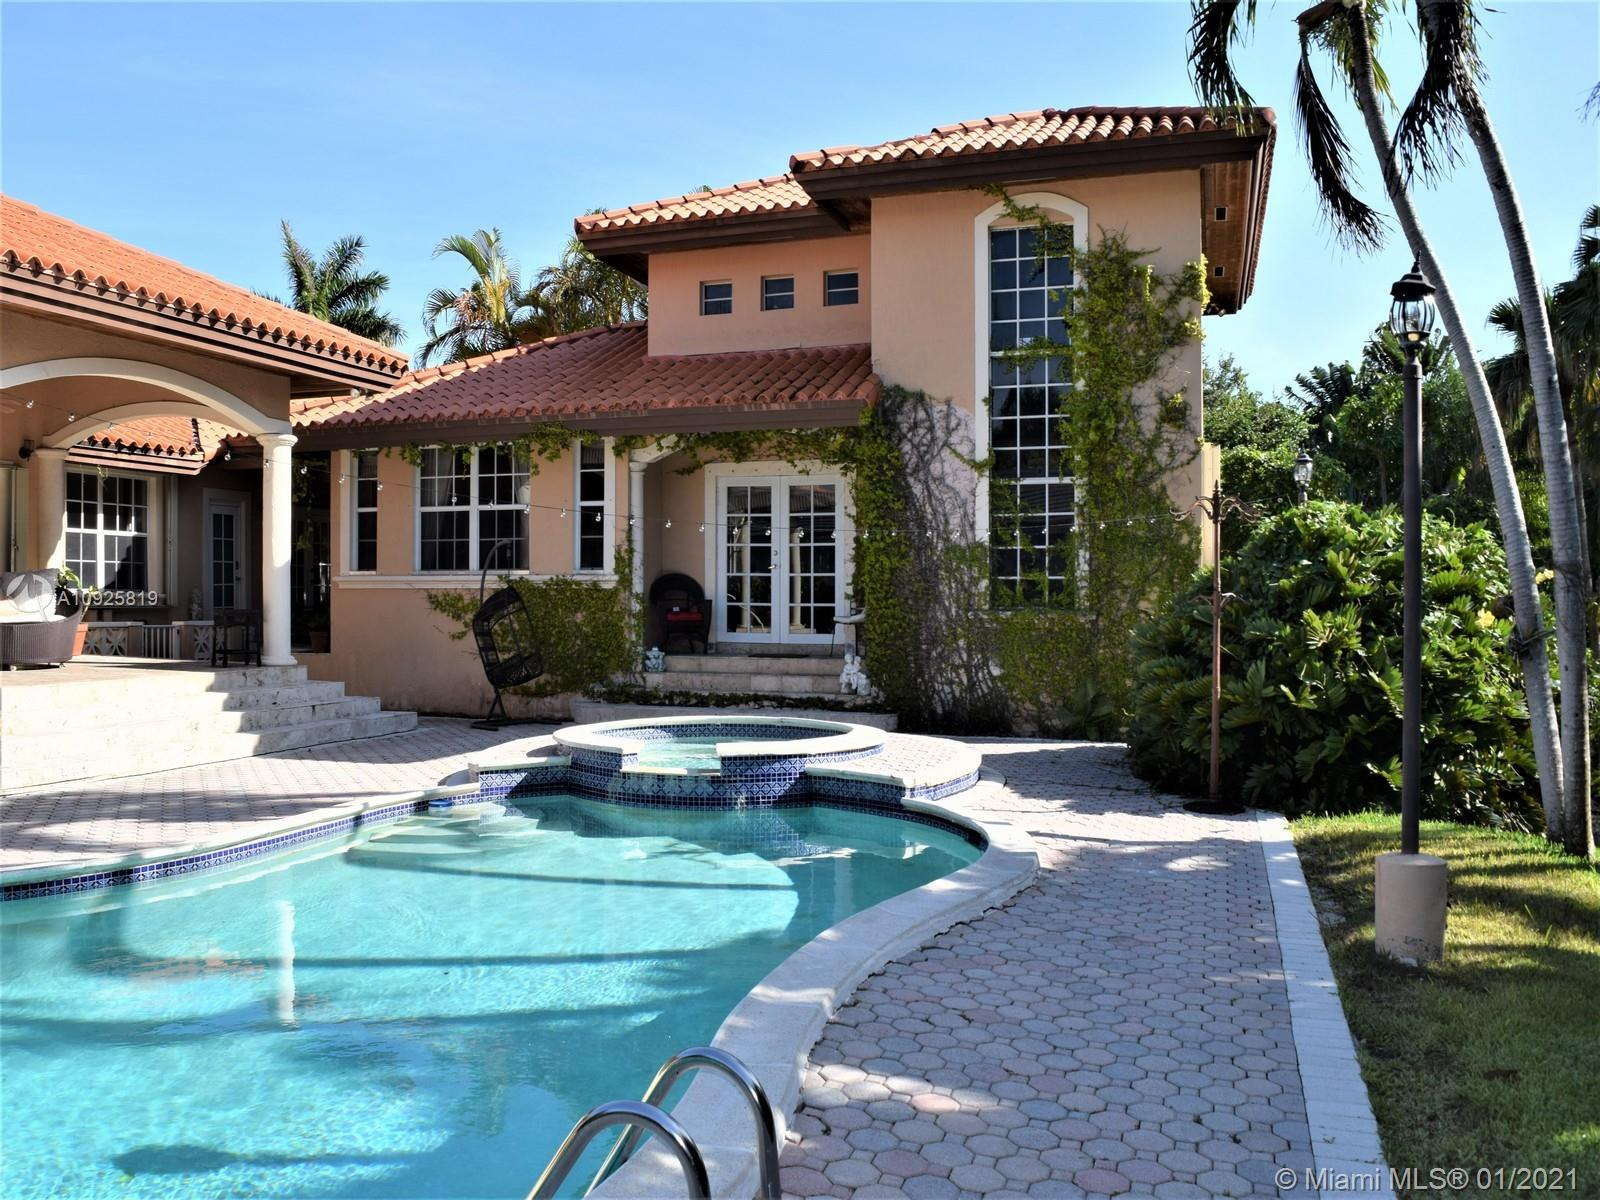 Tucked away in the exclusive gated waterfront community of Cocoplum, conveniently close to Coral Gables, South Miami, Coconut Grove, and Biscayne Bay, this spacious contemporary Mediterranean-style home was built in 1996 for elegance an comfort. Set on a lushly landscaped 16,988 sf lot-the 5-bed/4.5-bath open layout home boasts an impressive entry foyer, large formal living room, an updated kitchen with stainless steel appliances, and formal dining room all ideal for entertaining. Outside, the beautiful backyard includes a lovely swimming pool as well as a two-story guest house/in-law suite with bar, full bath, and upstairs bedroom. Additional extras include a two-car garage, separate laundry room, and great central community location